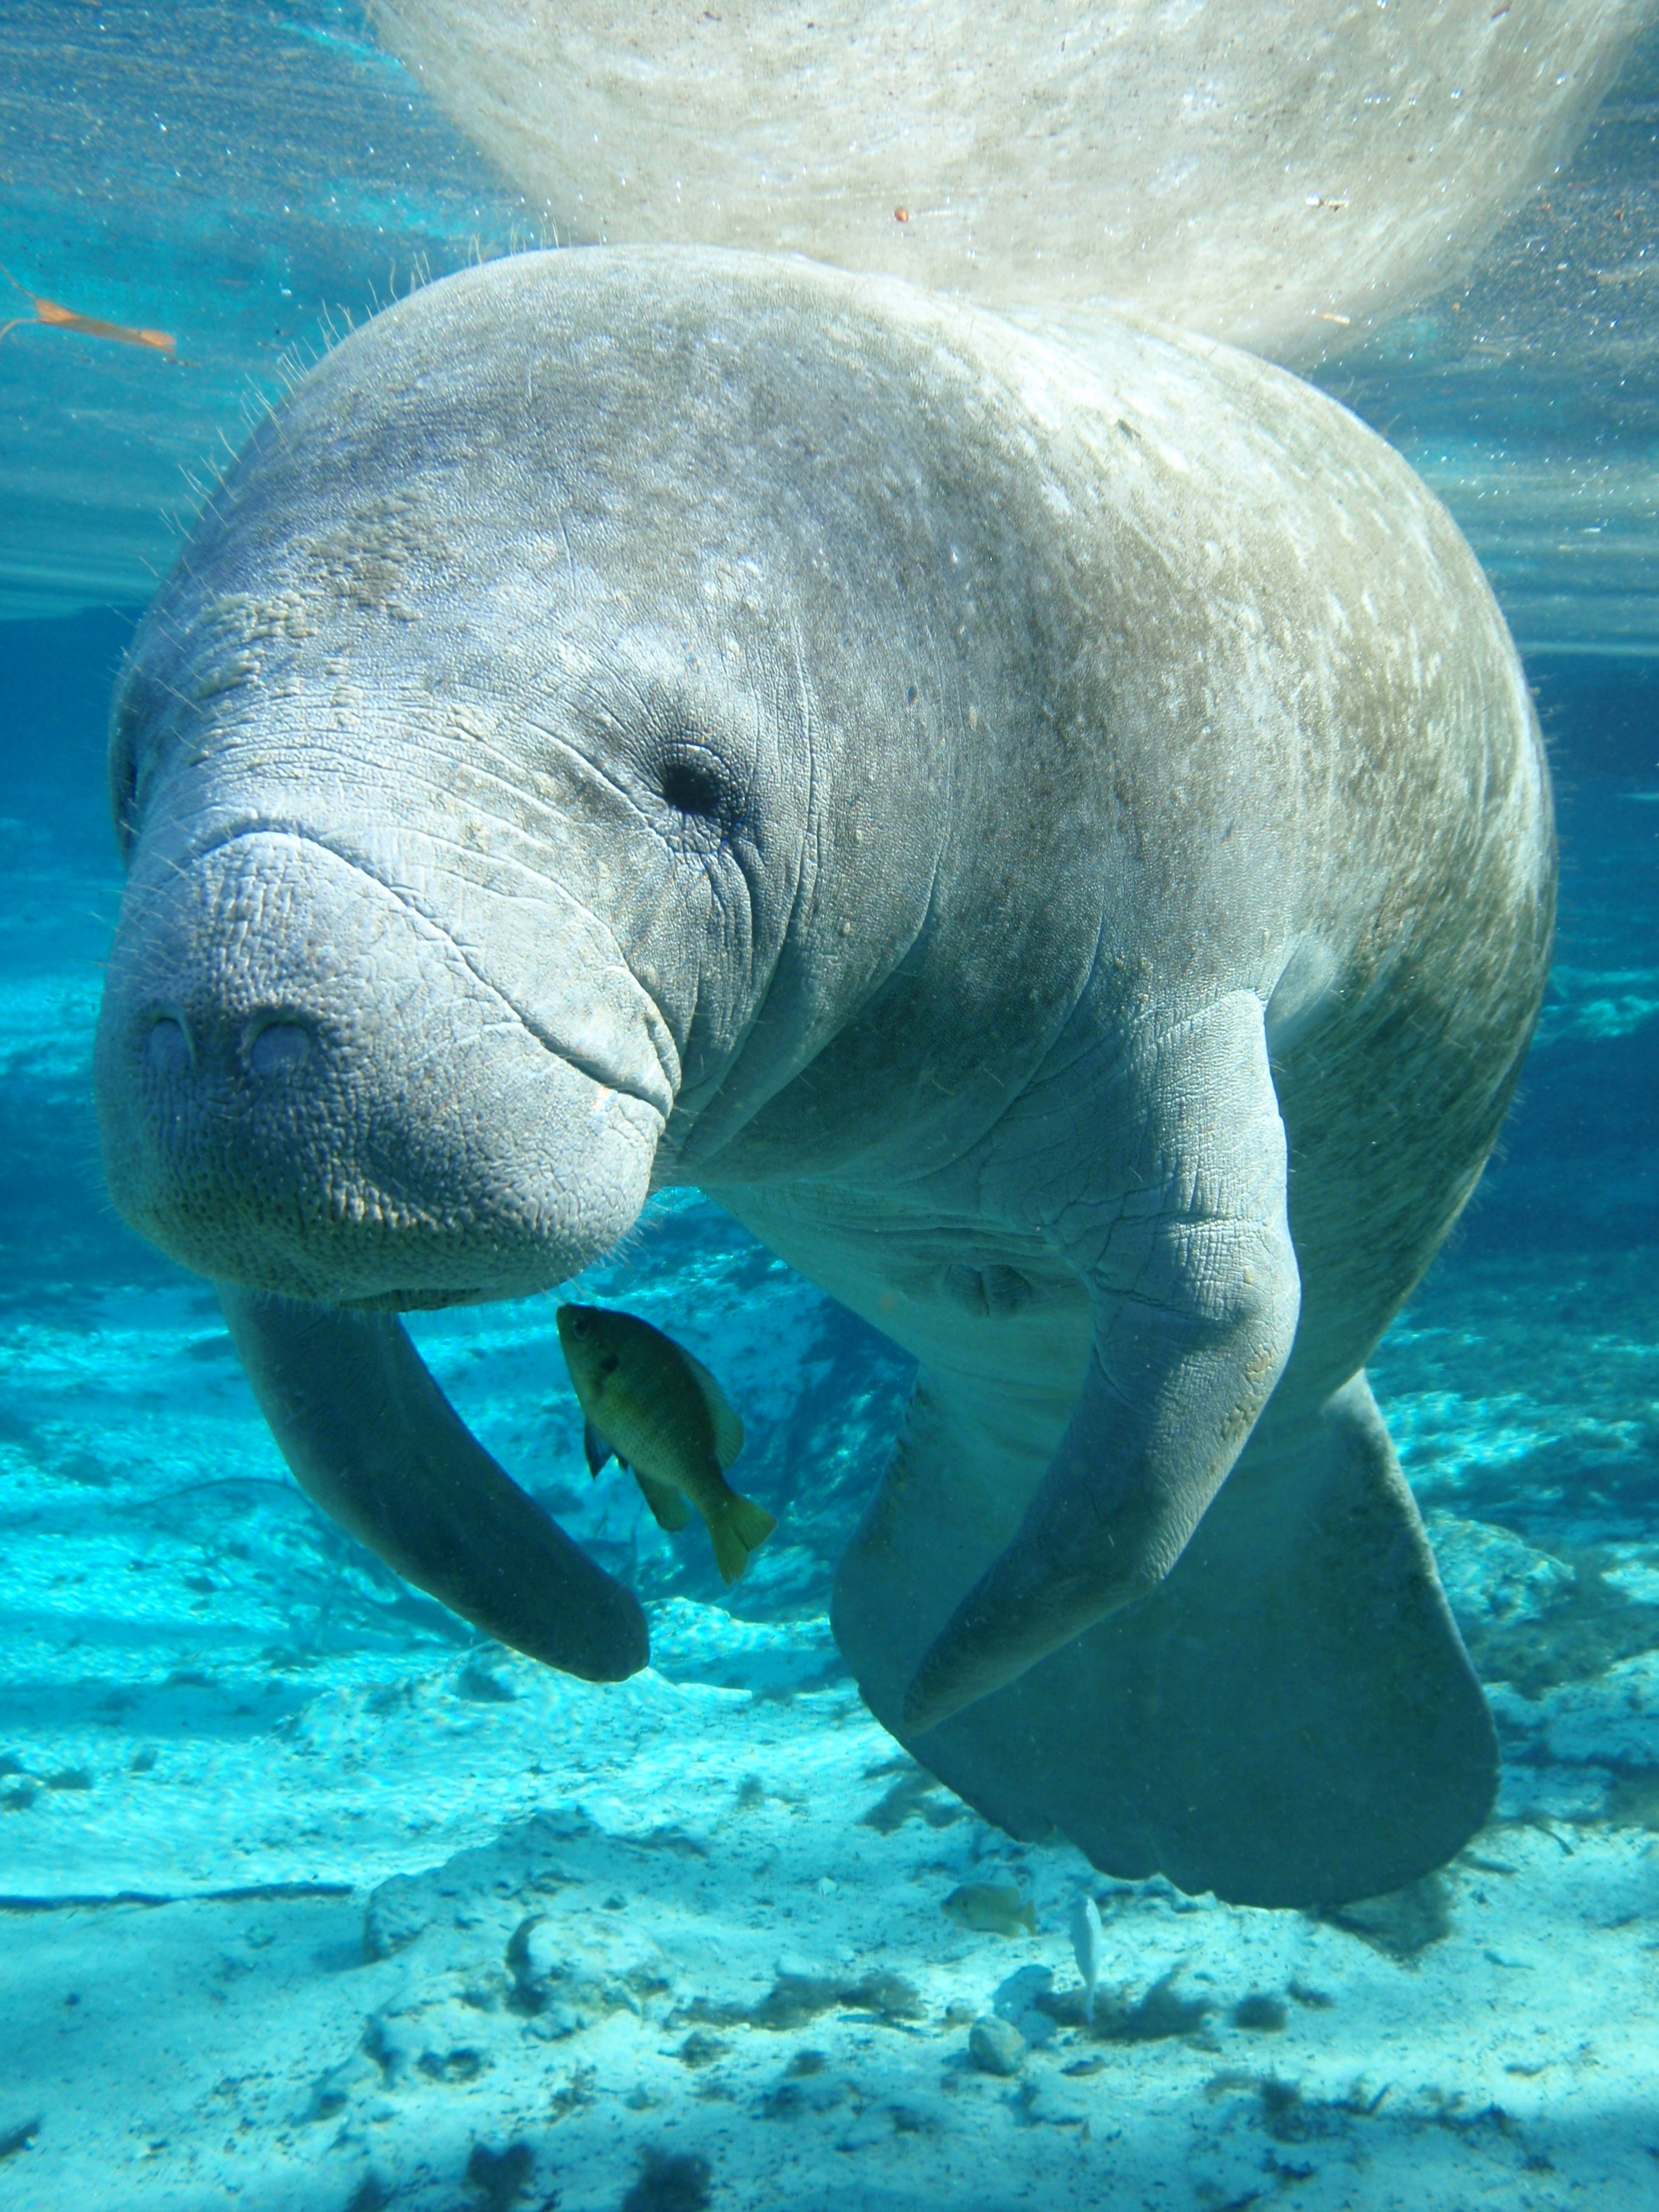 florida manatee can you believe that boaters get angry with these